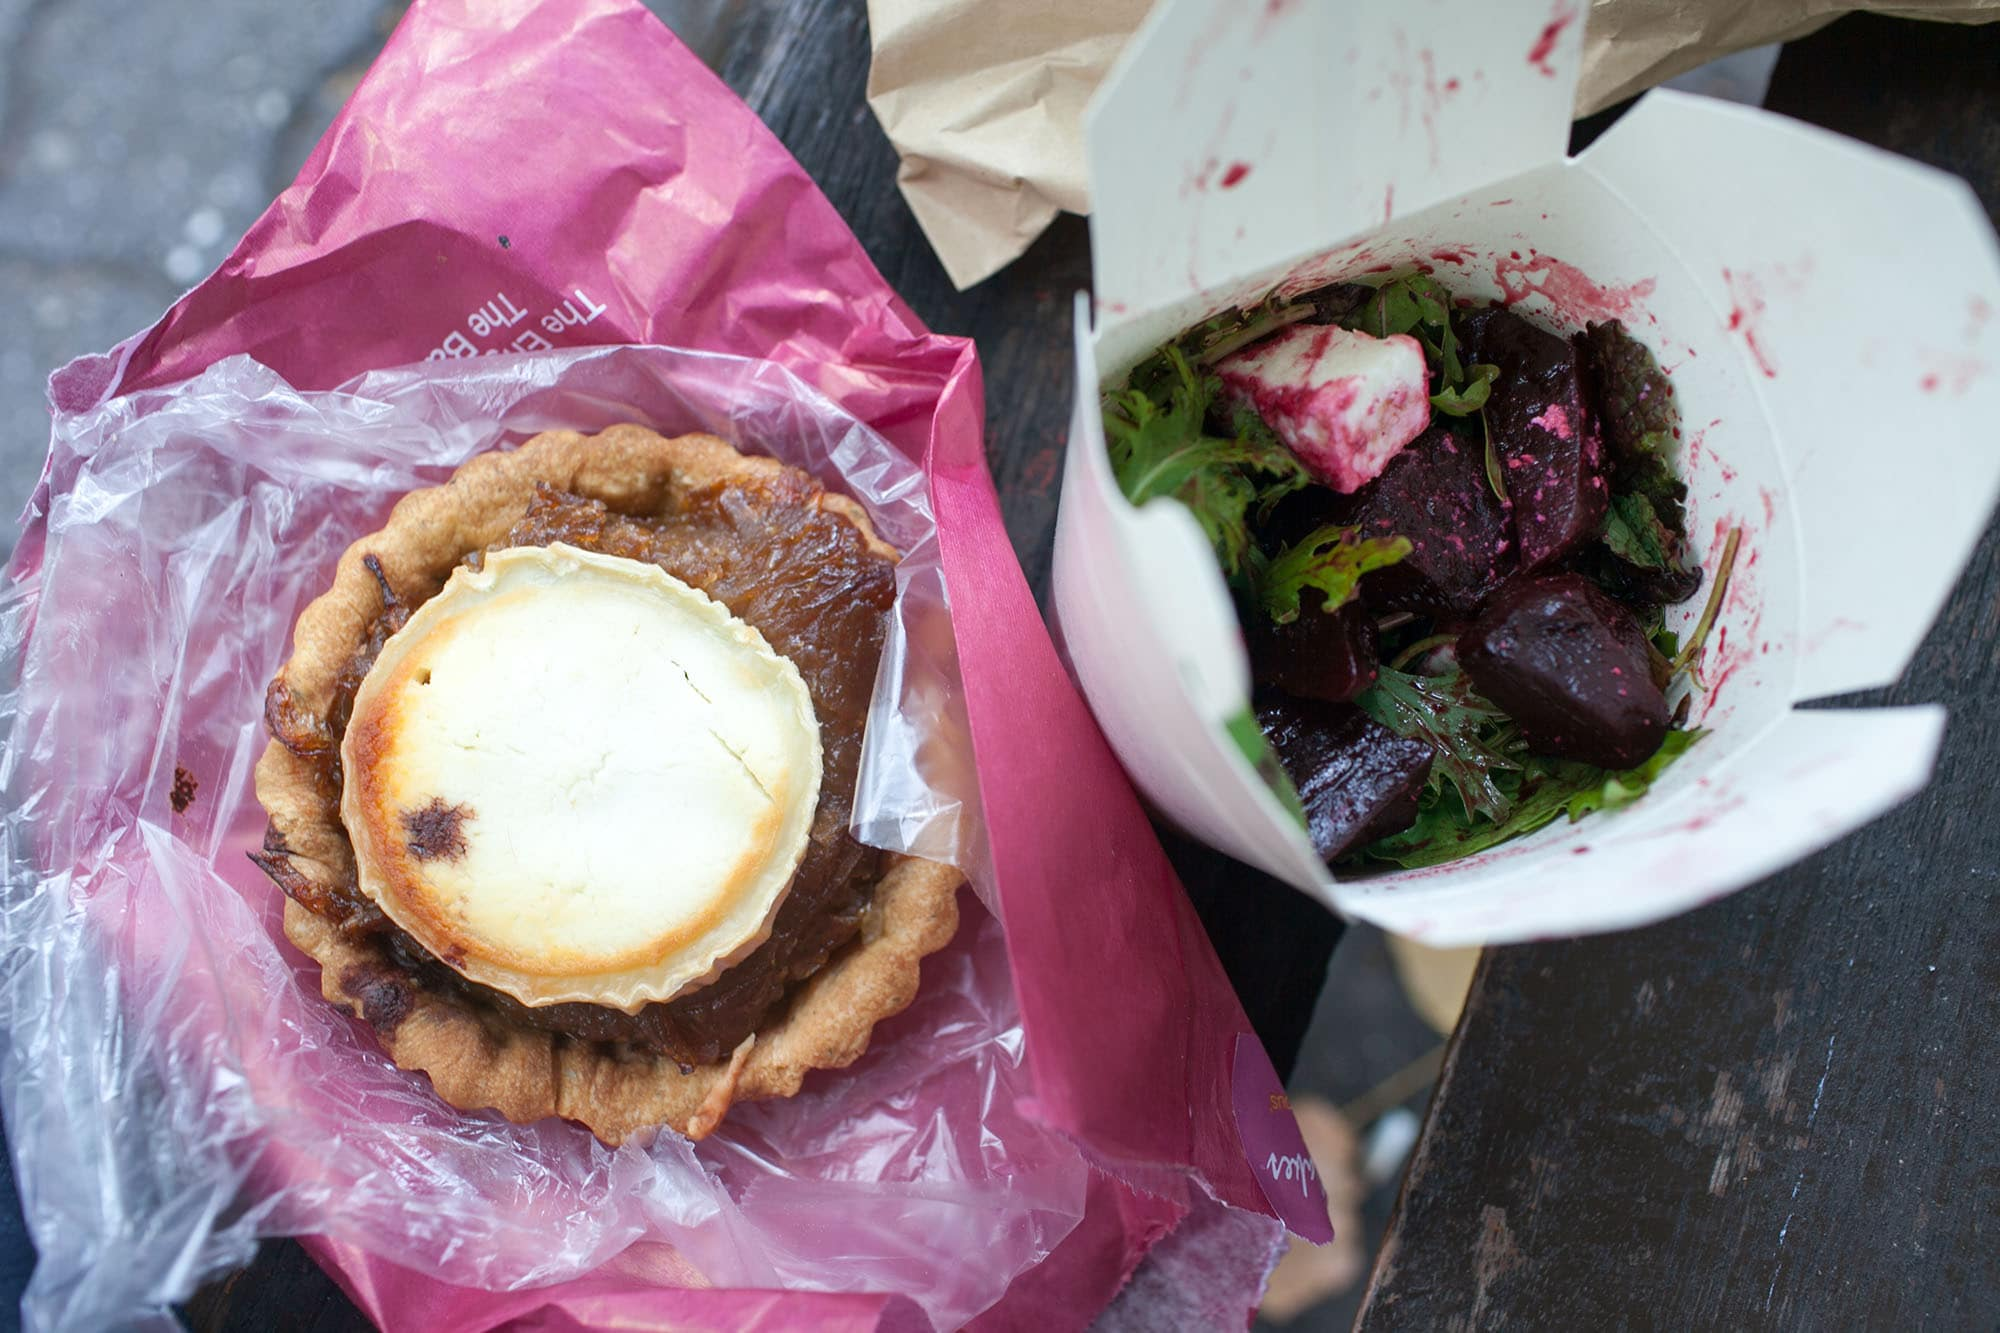 Tart and beet salad from the market in Cork, Ireland